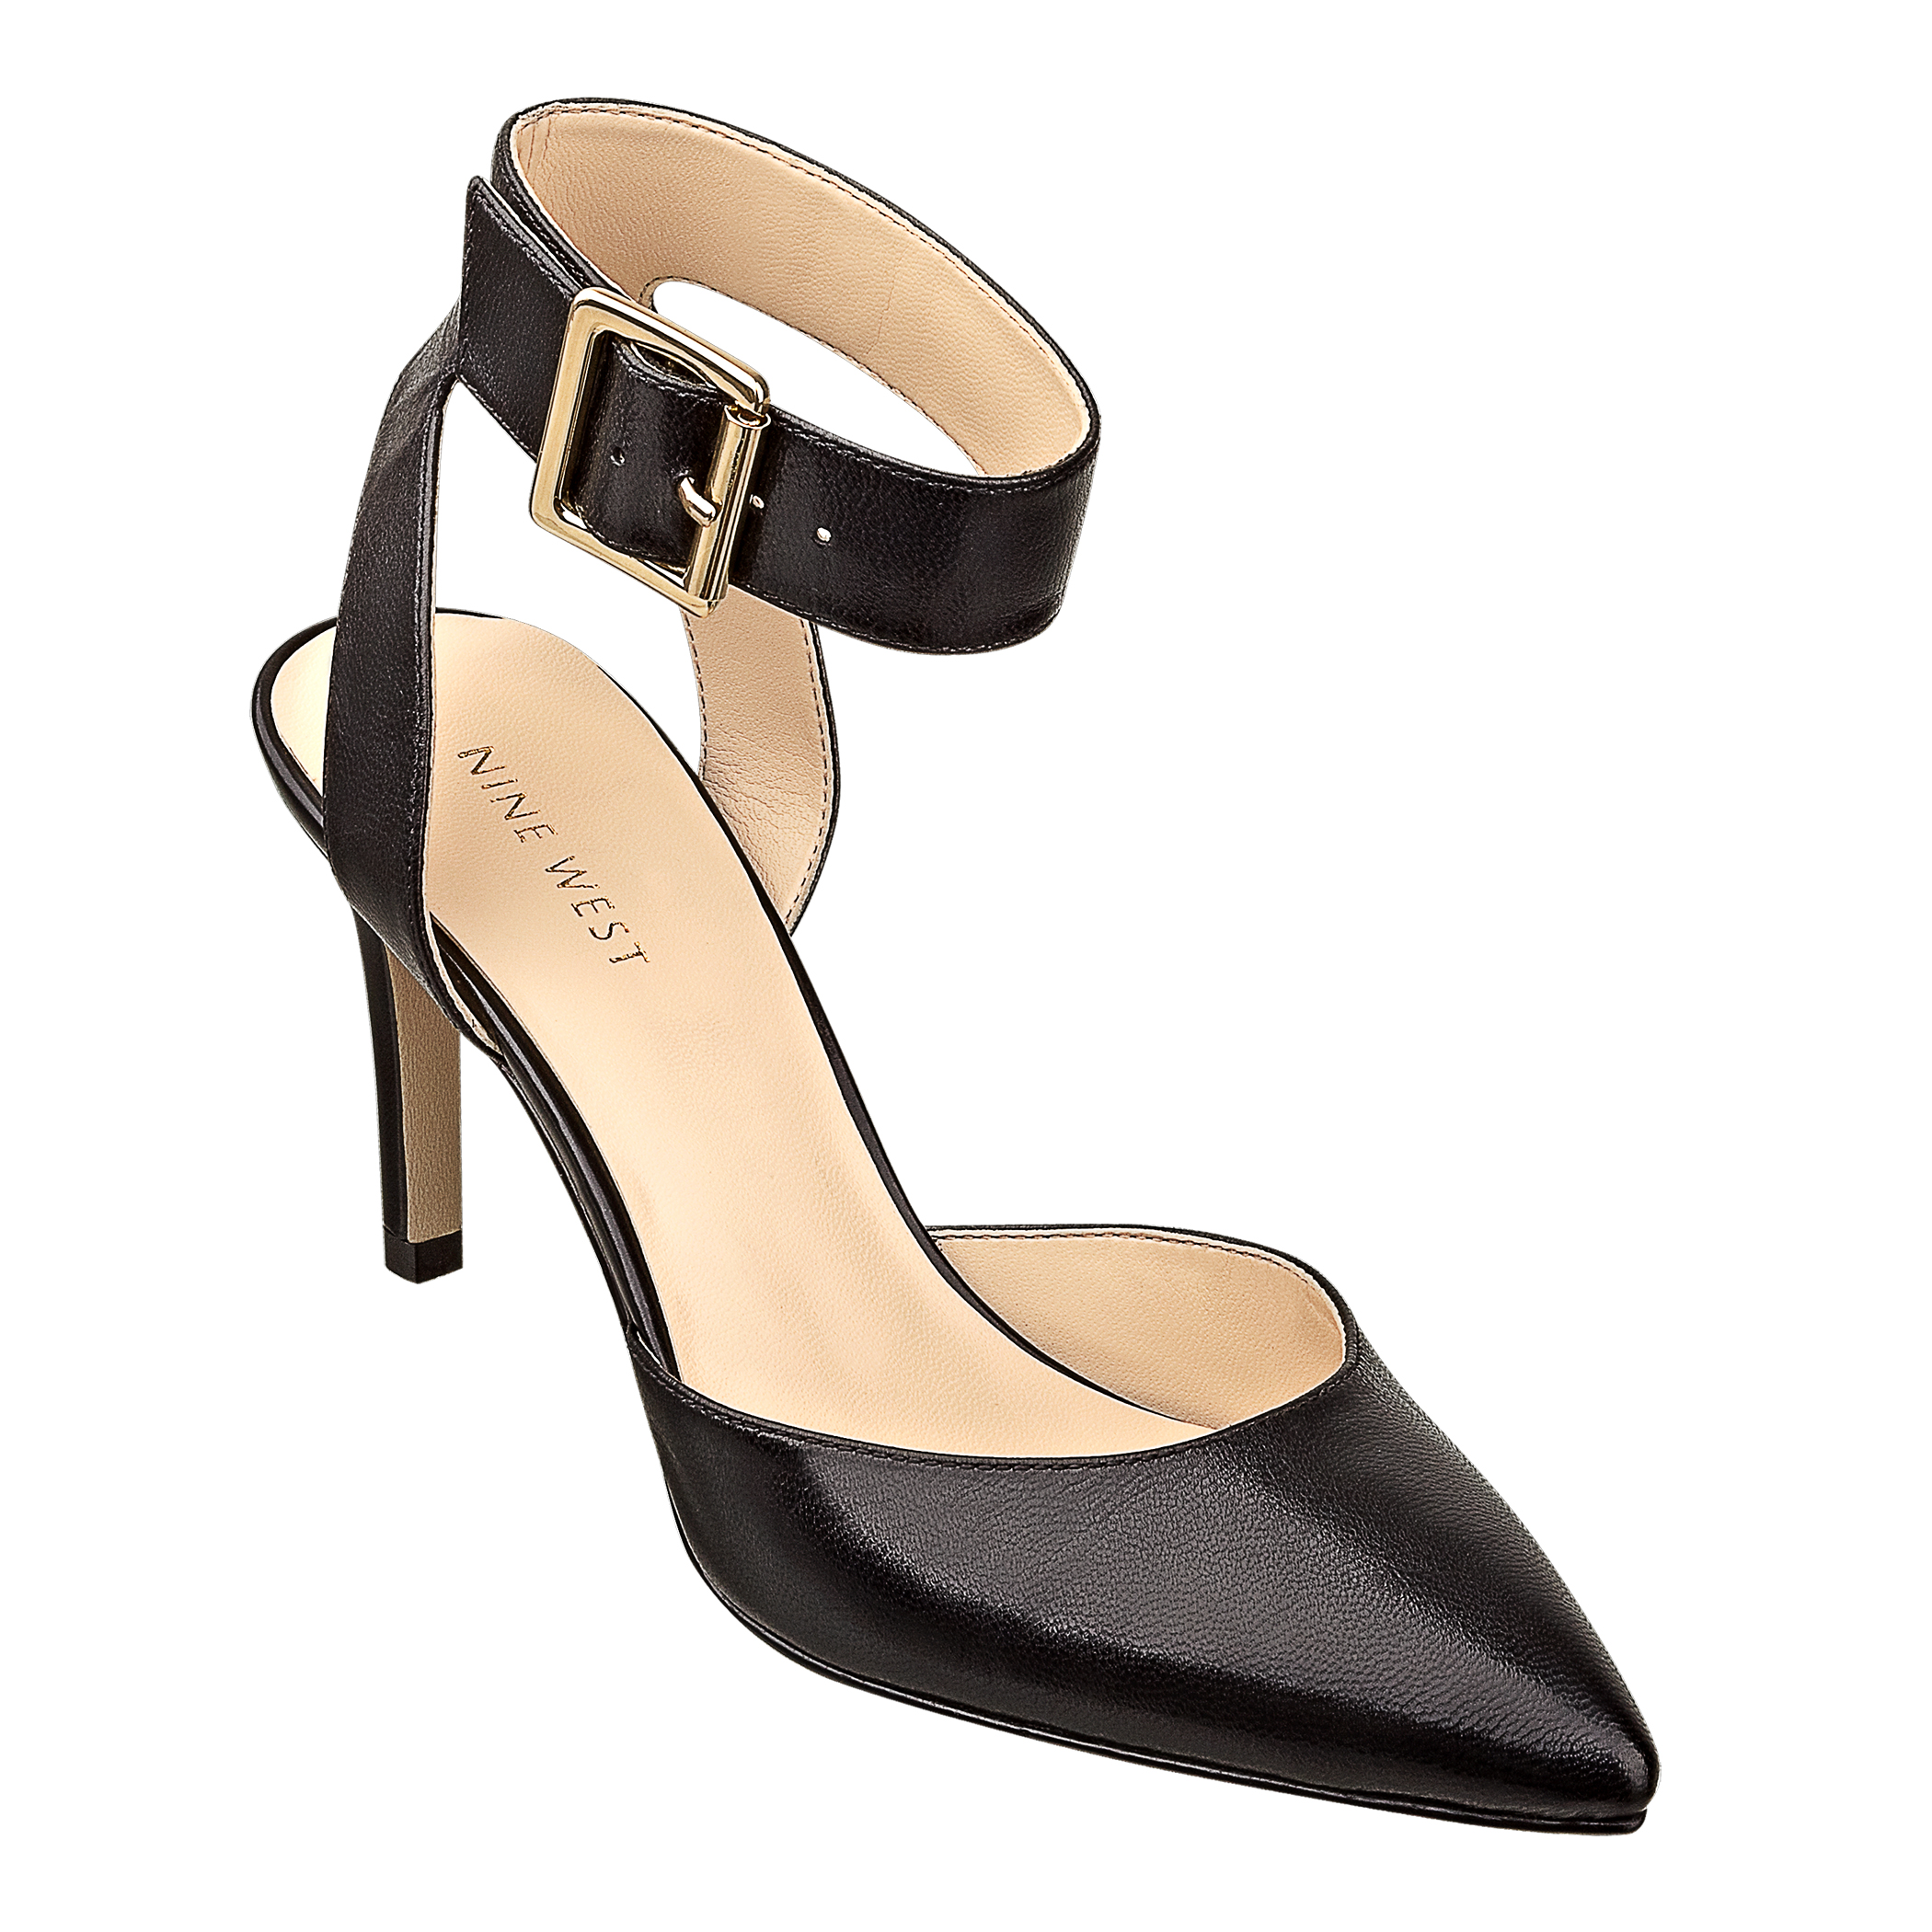 Nine West  Shoes   All Pumps   Callen - pointy toe pump